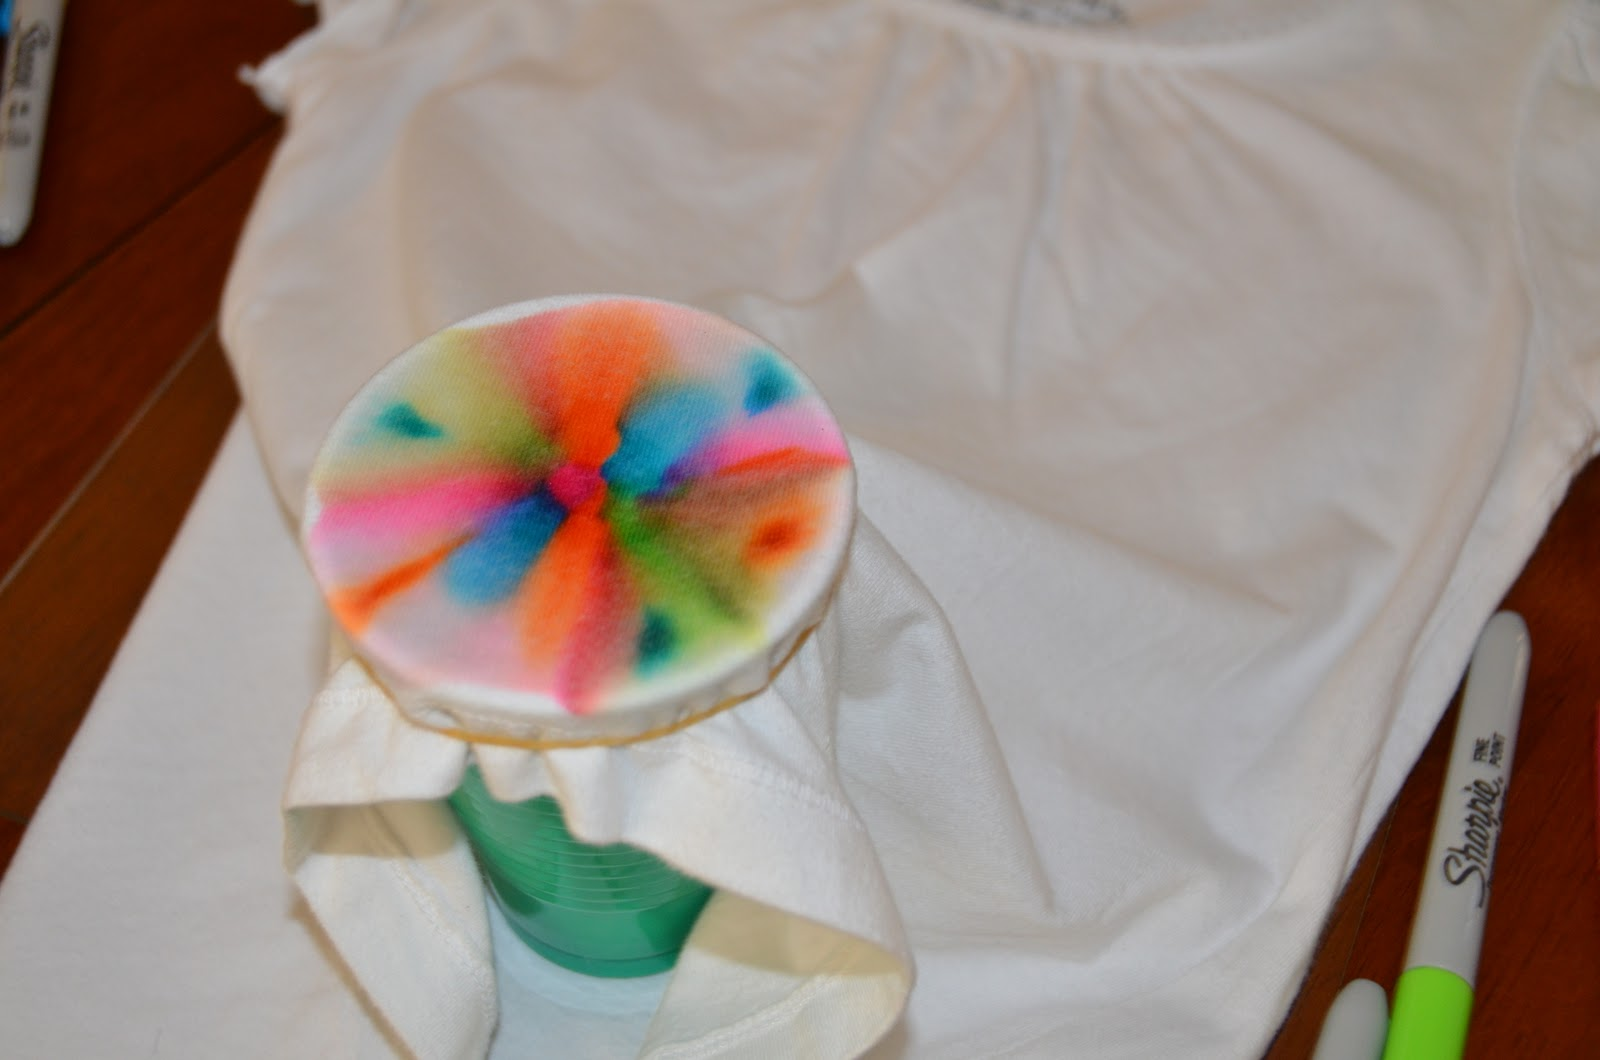 Homemade tie dye t shirts with sharpie markers thifty sue - Pintura para camisetas ...